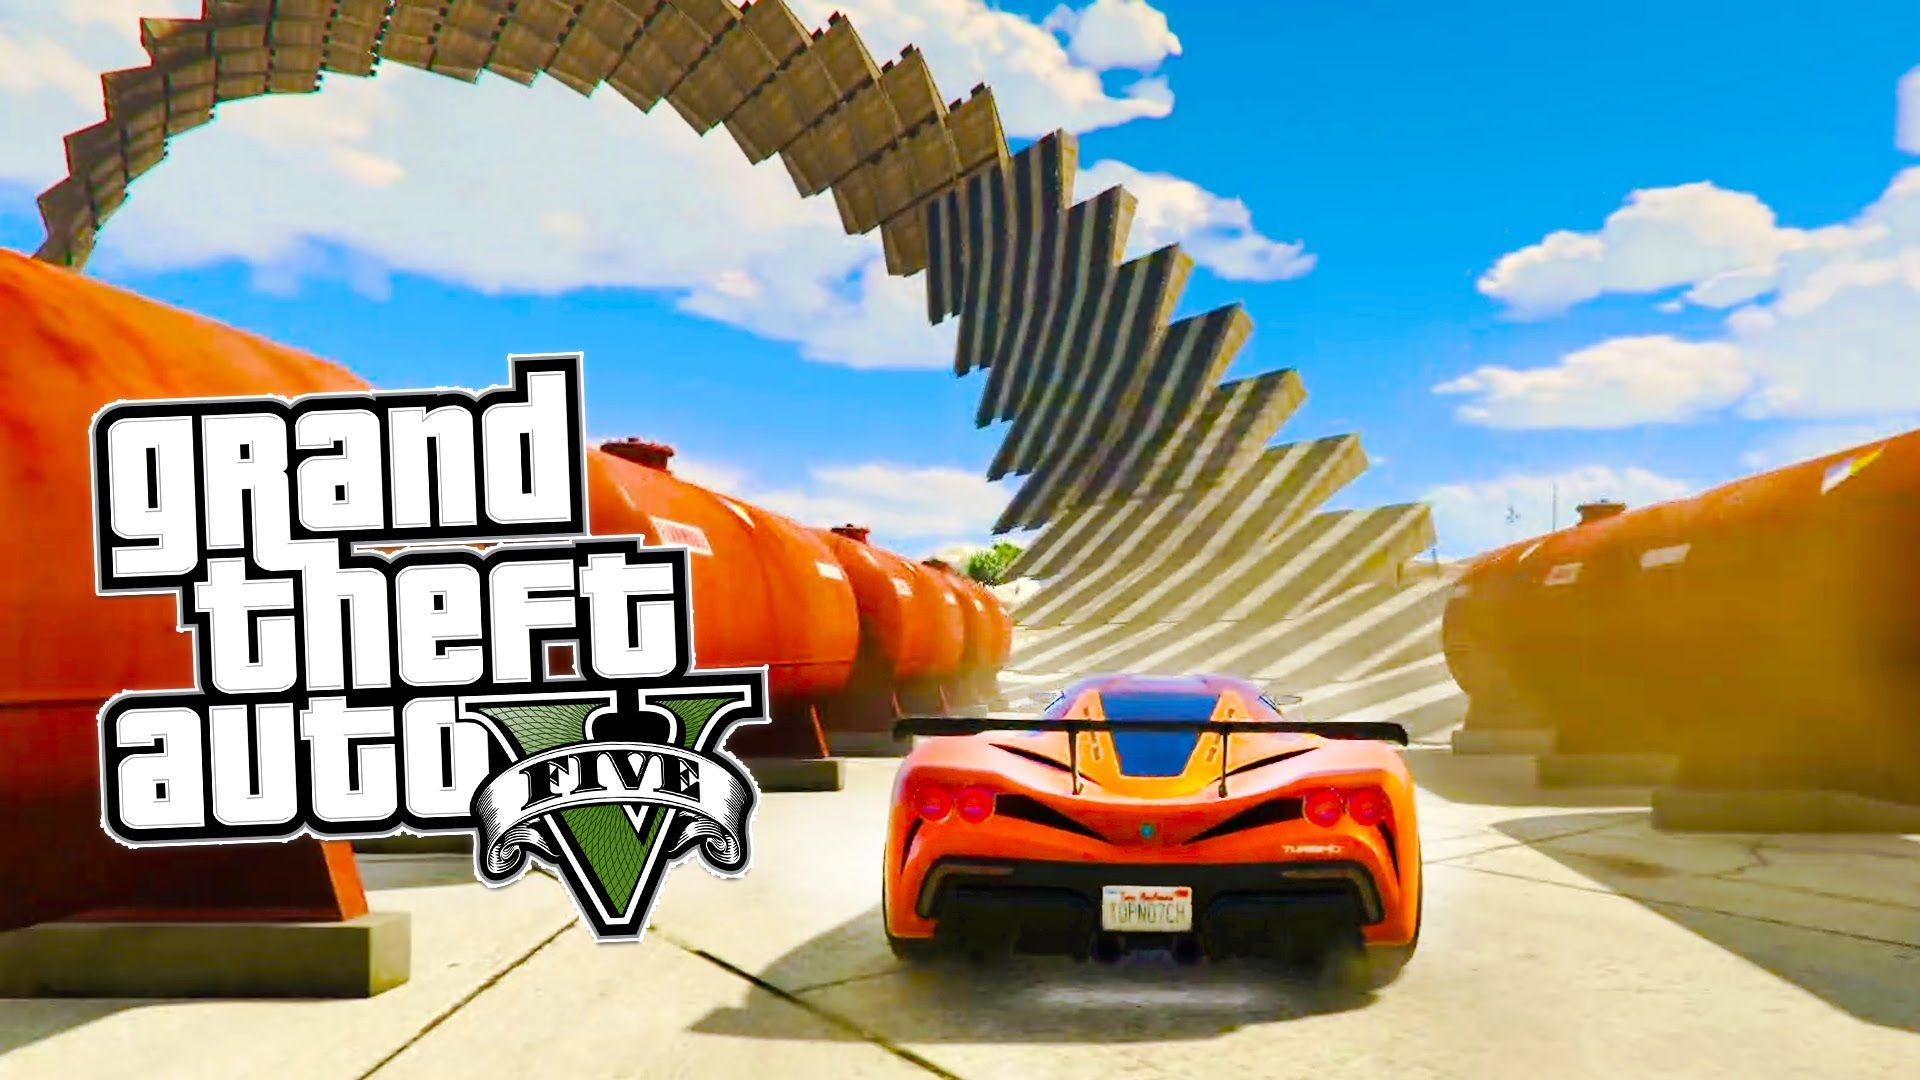 GTA 5 EPIC 360 Inverted Spiral Stunt Race & MORE Awesome GTA